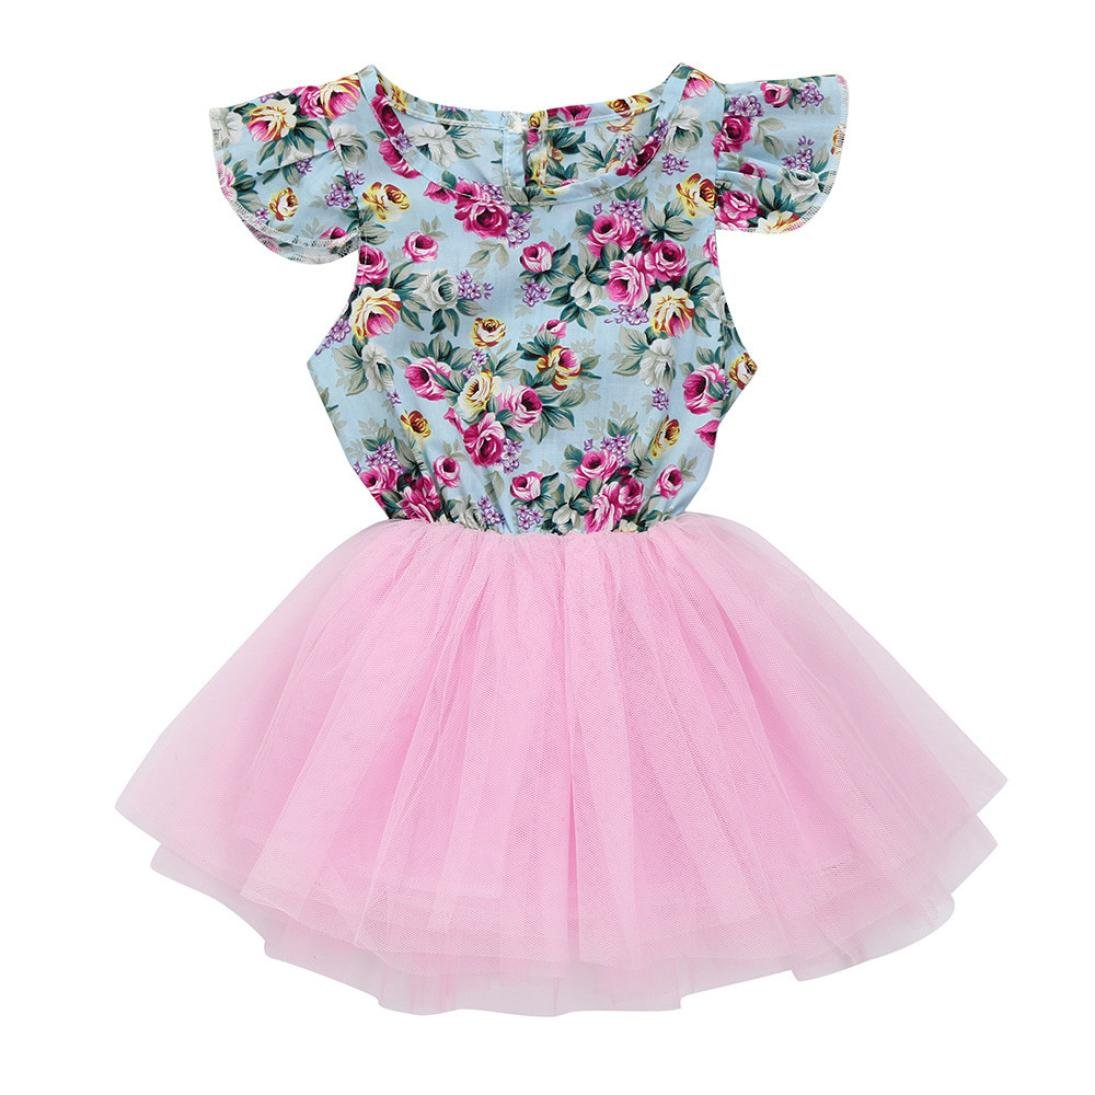 Amazon.com: Orangeskycn Baby Girls Dress Clothes Printing Patchwork Pageant Party Princess Dress Sundress: Clothing